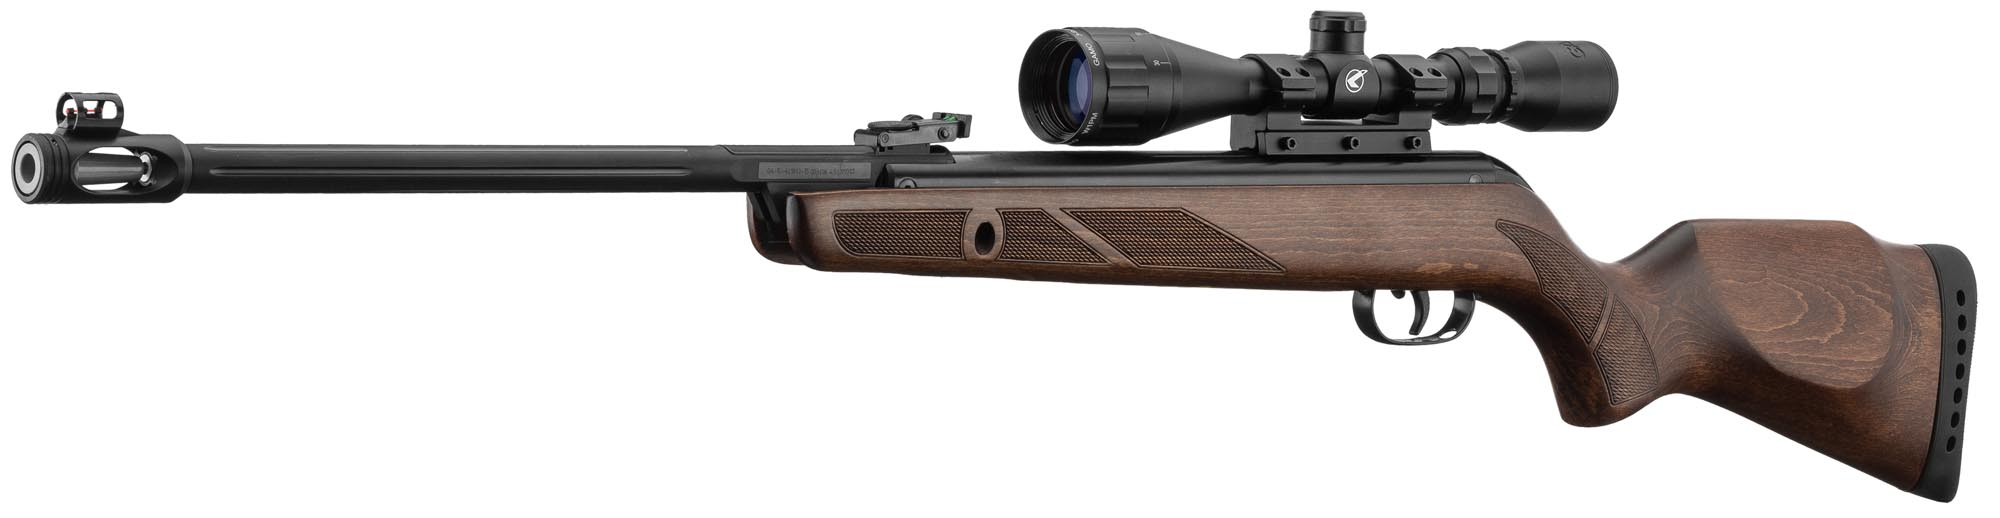 Carabine GAMO Hunter 440 AS + lunette 3-9 x 40 WR - 19,9 joules